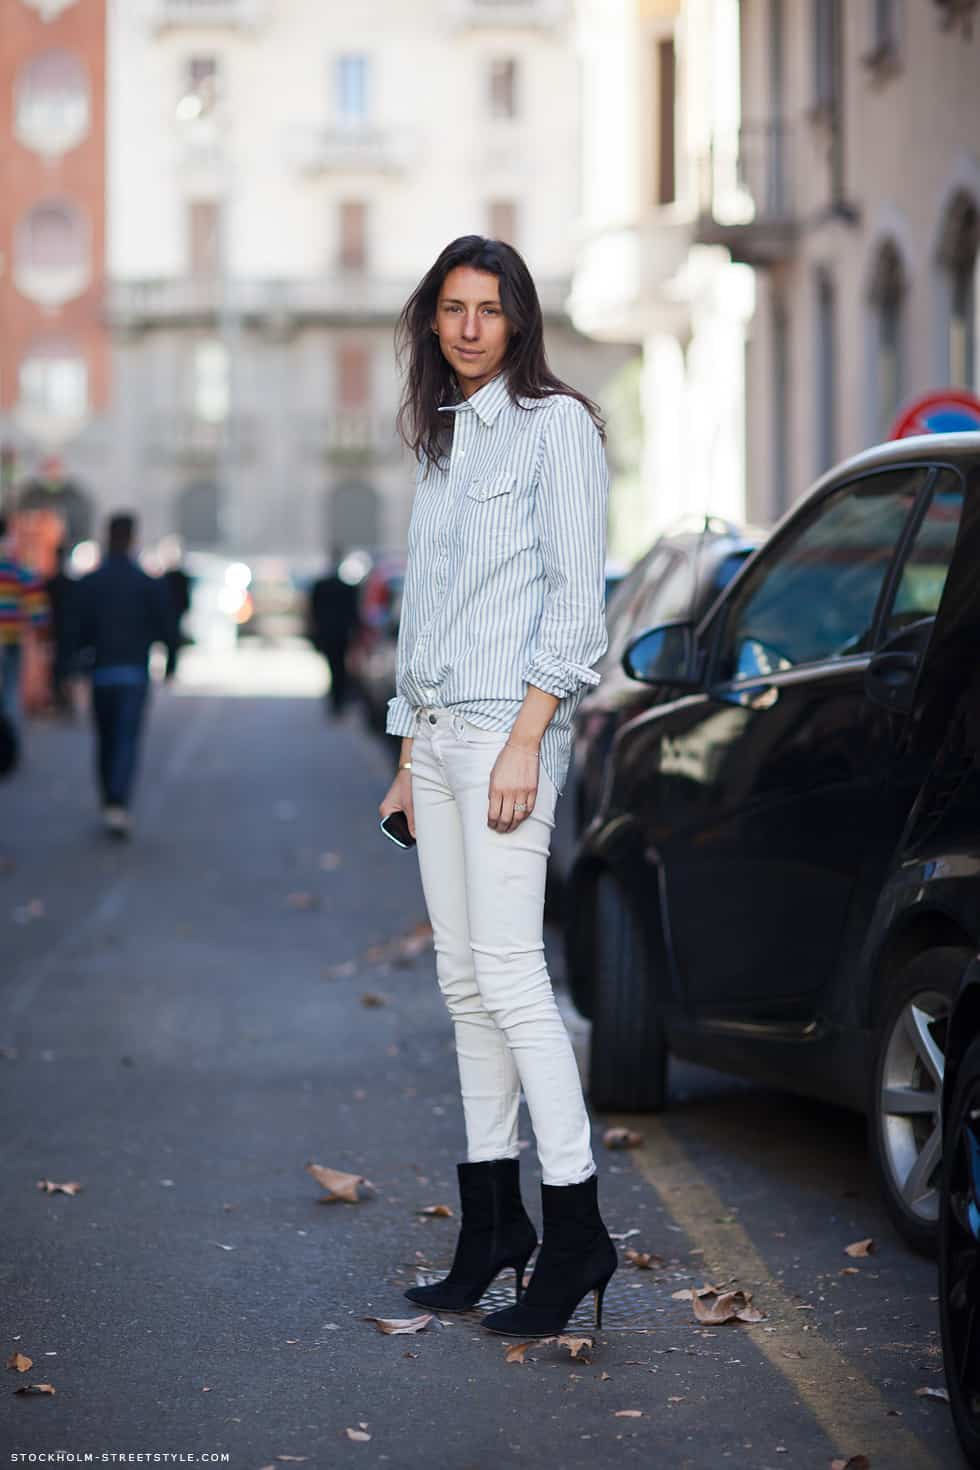 White Jeans In Winter. What Do You Think? – The Fashion ...